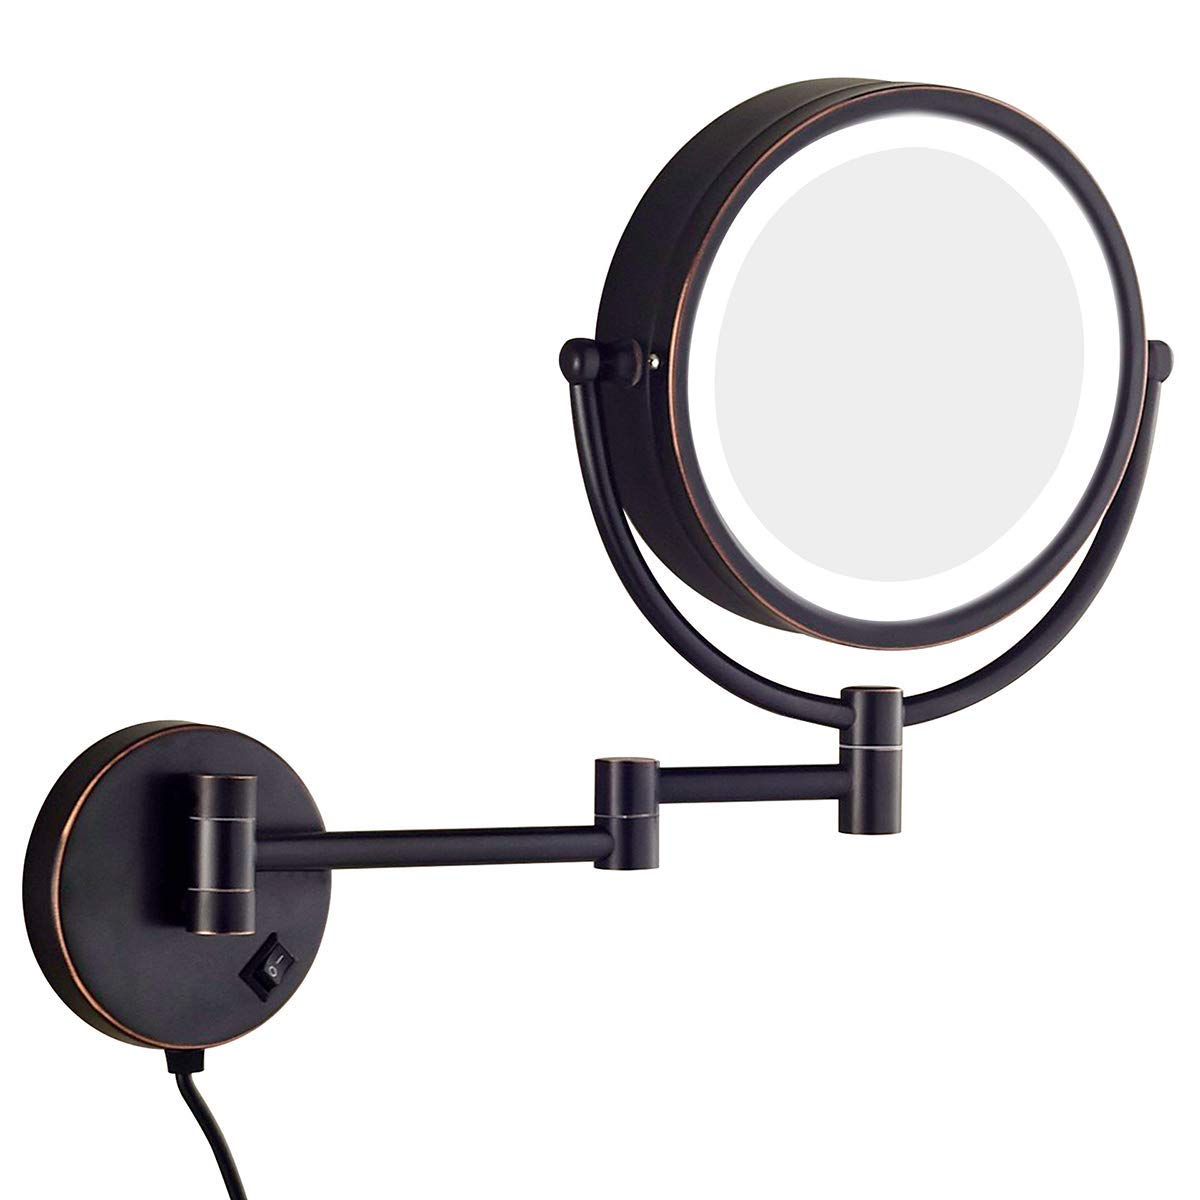 Sanliv 8.5 Inch LED Lighted Wall Mount Makeup Mirrors Wall Mounted Magnifying Shaving Mirror